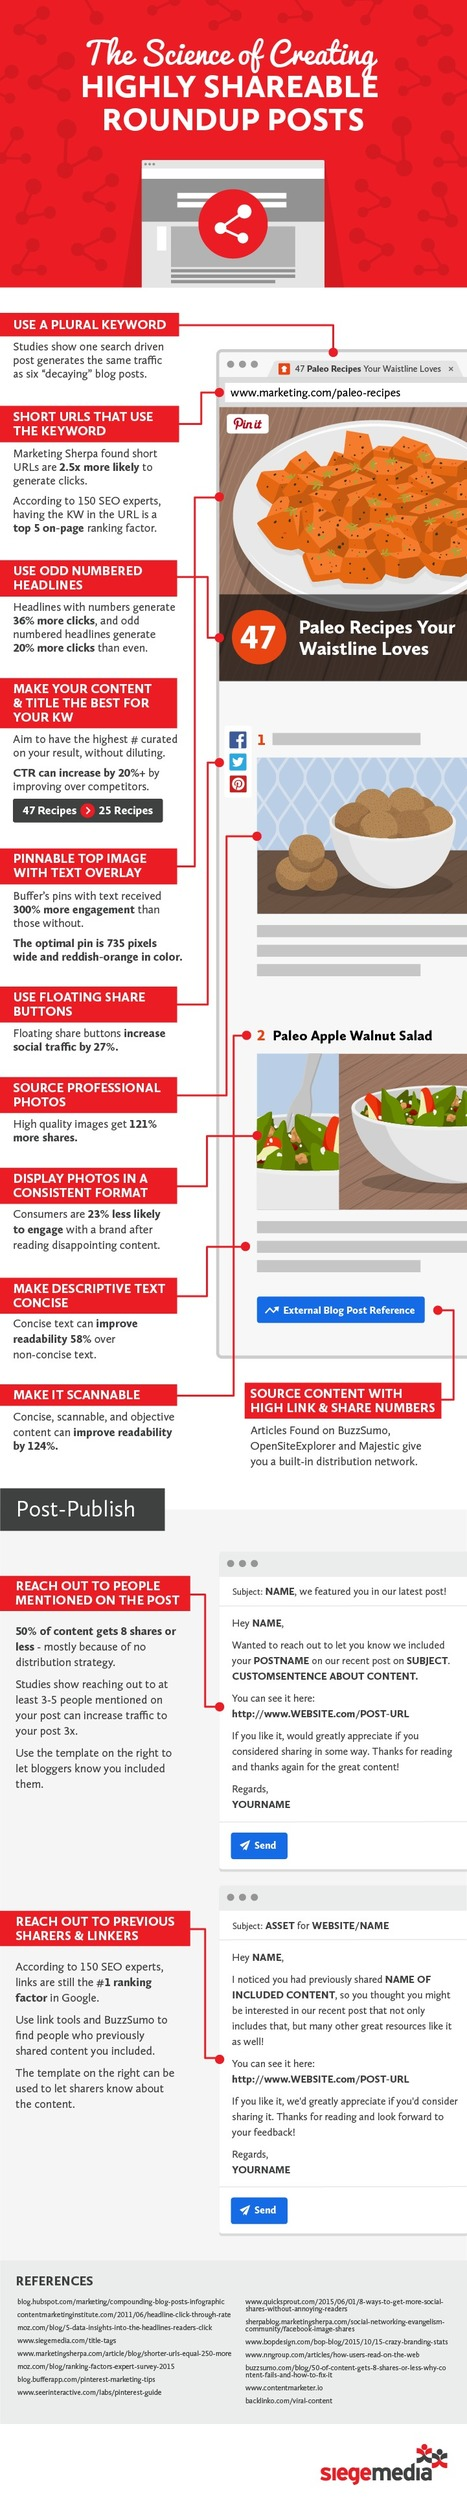 The Anatomy of a Highly Shareable List Post #Infographic | My Blog 2016 | Scoop.it